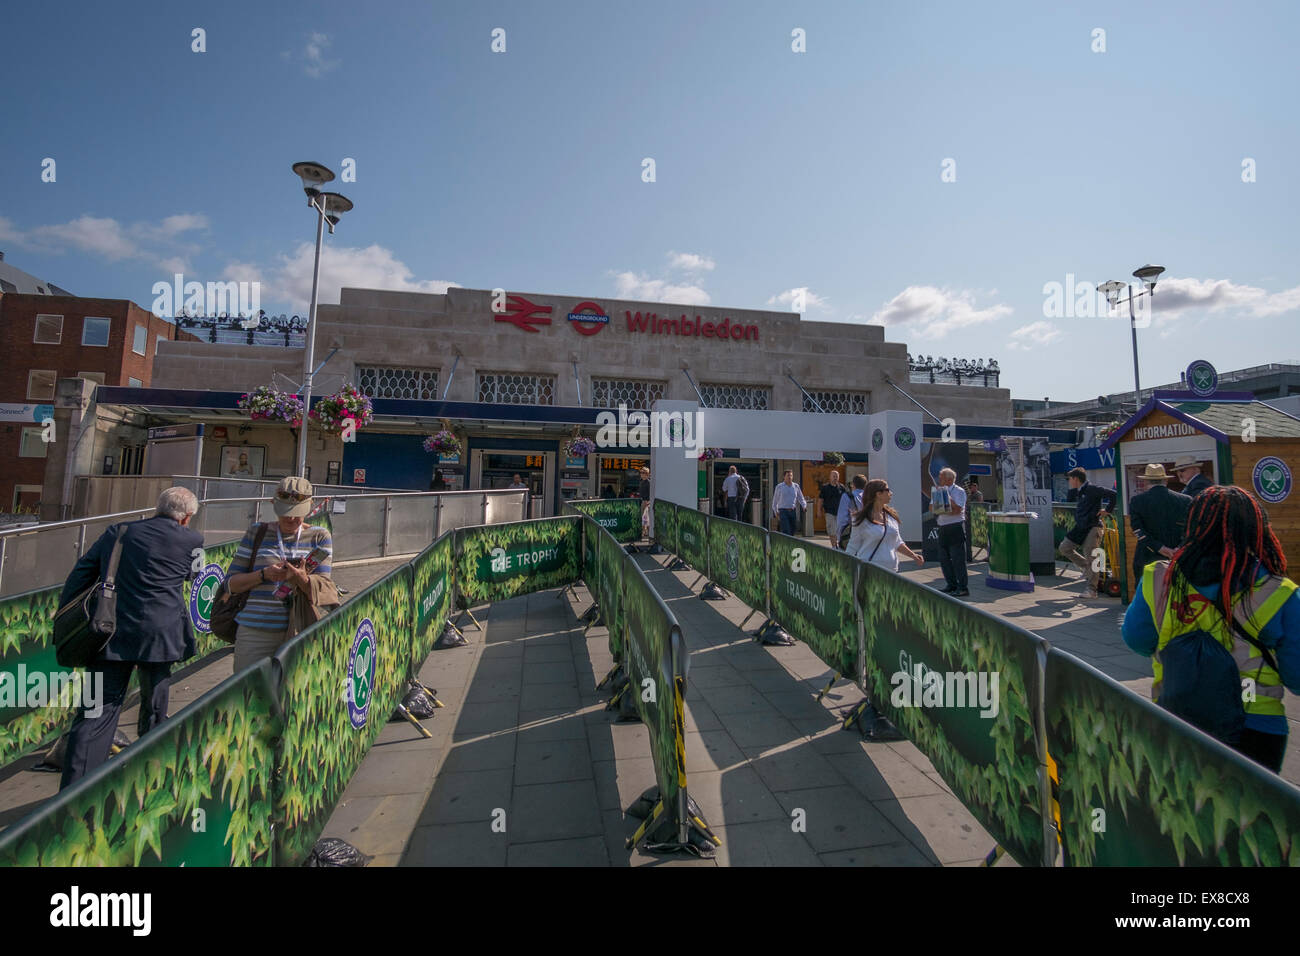 Wimbledon, London UK. 9th July 2015. Tube strike affecting Wimbledon station, terminus station of the District Line, - Stock Image